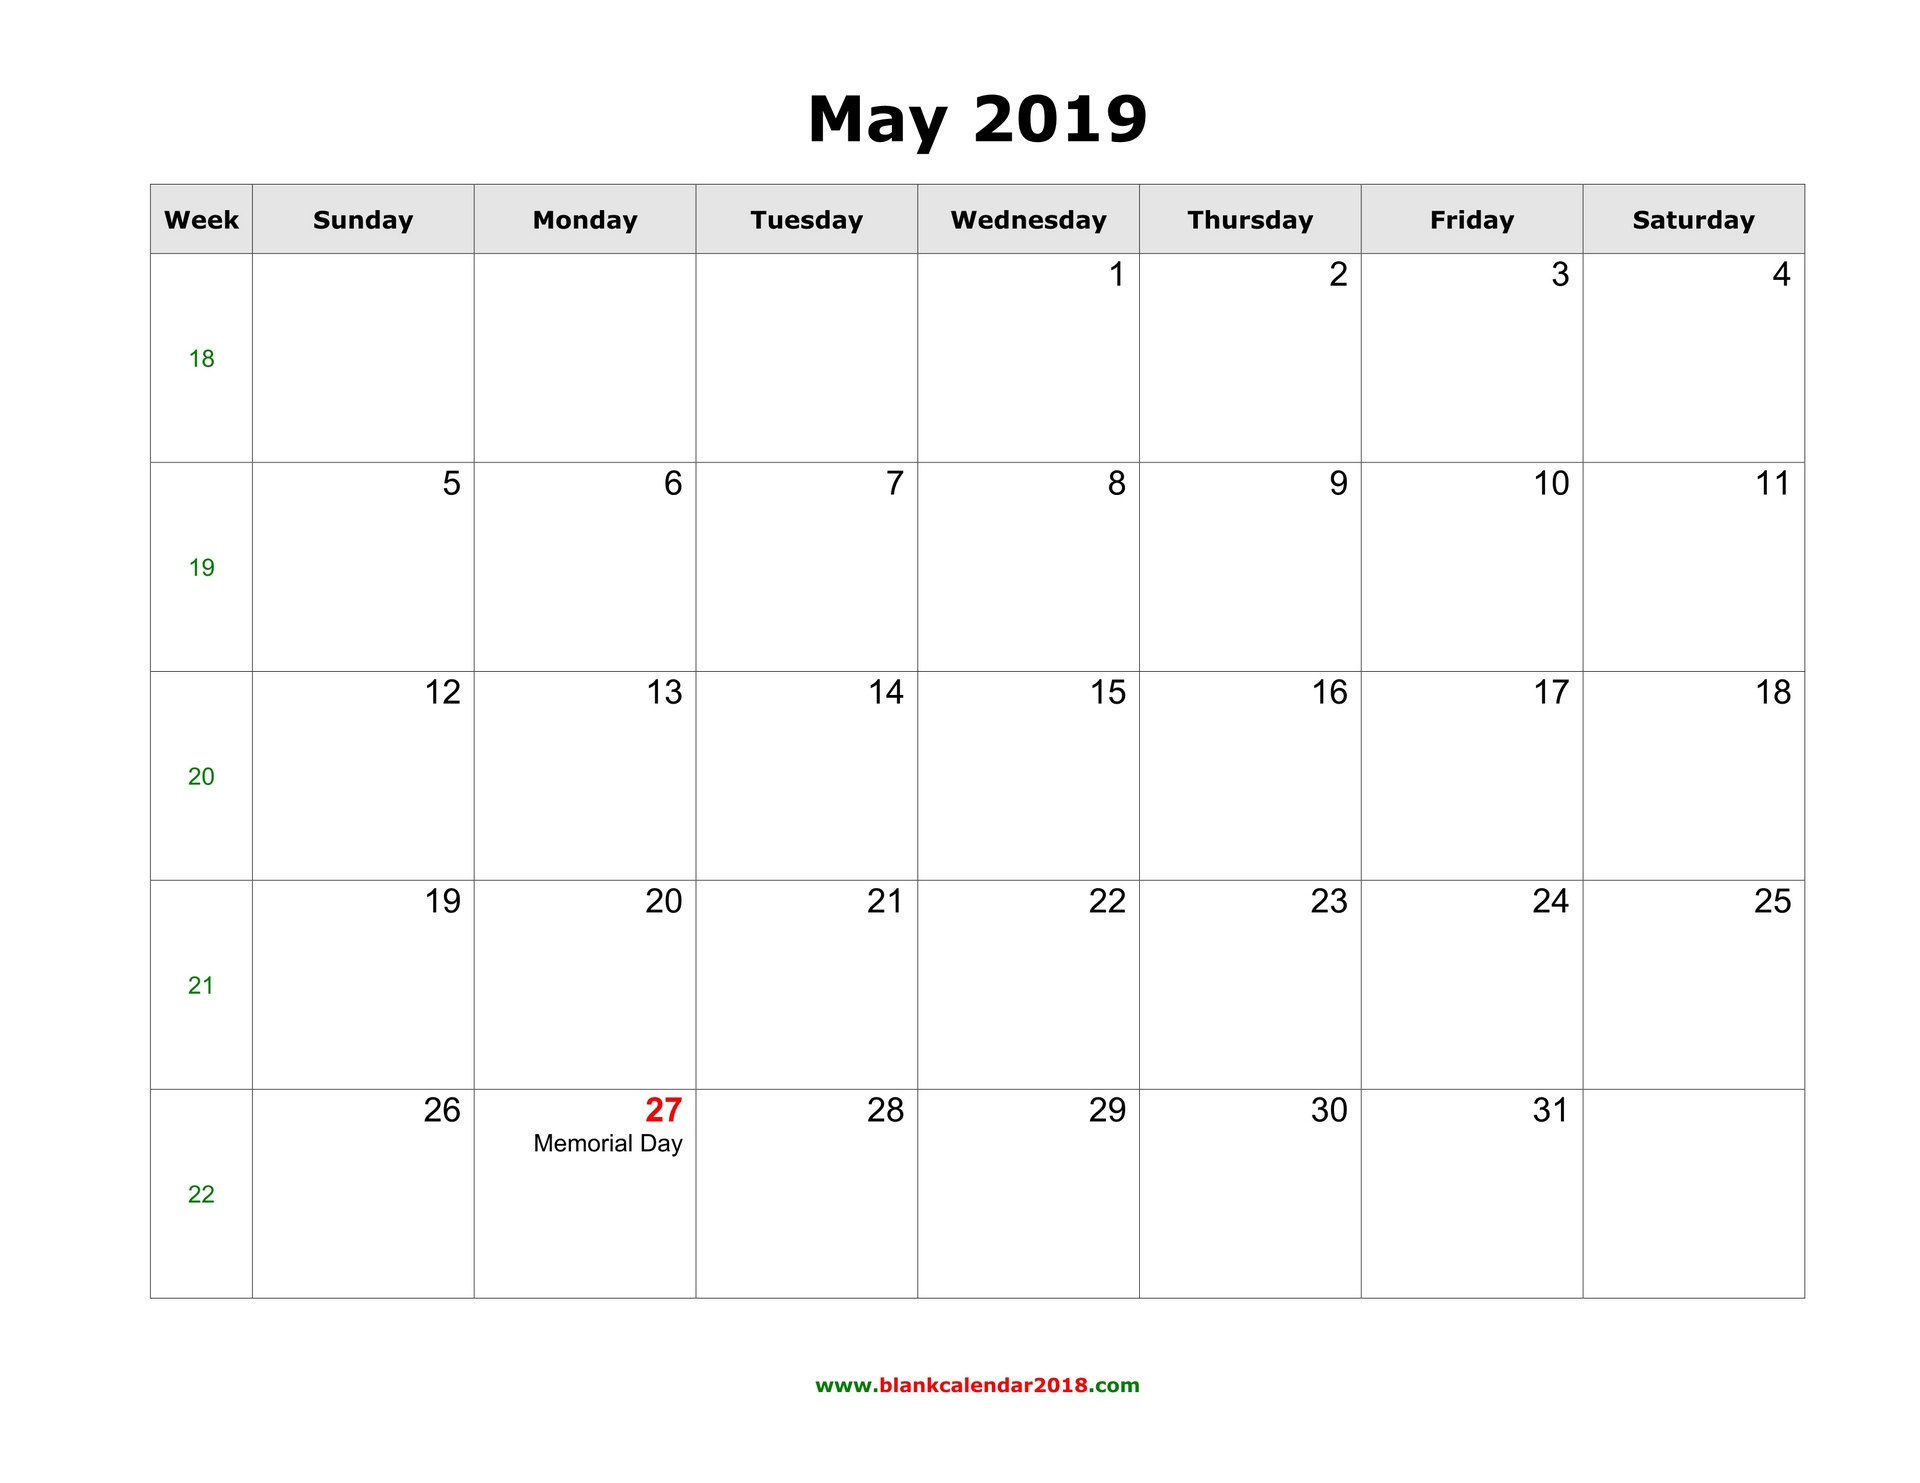 blank calendar for may 2019